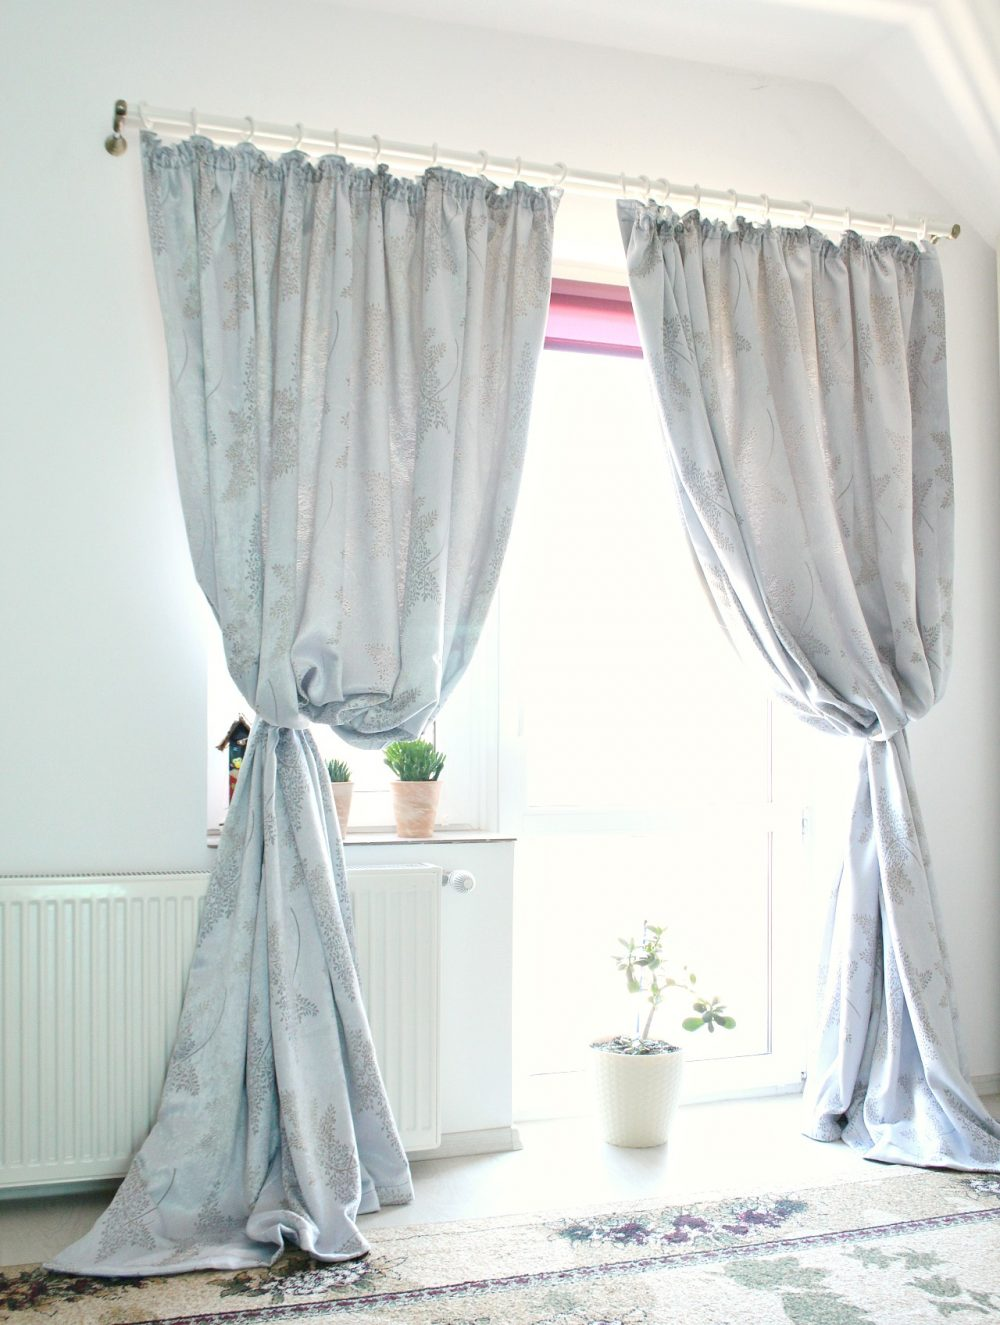 sewing howtoguides the quarter lined project experts simple easy bring simply you curtains magazine a at deceptively